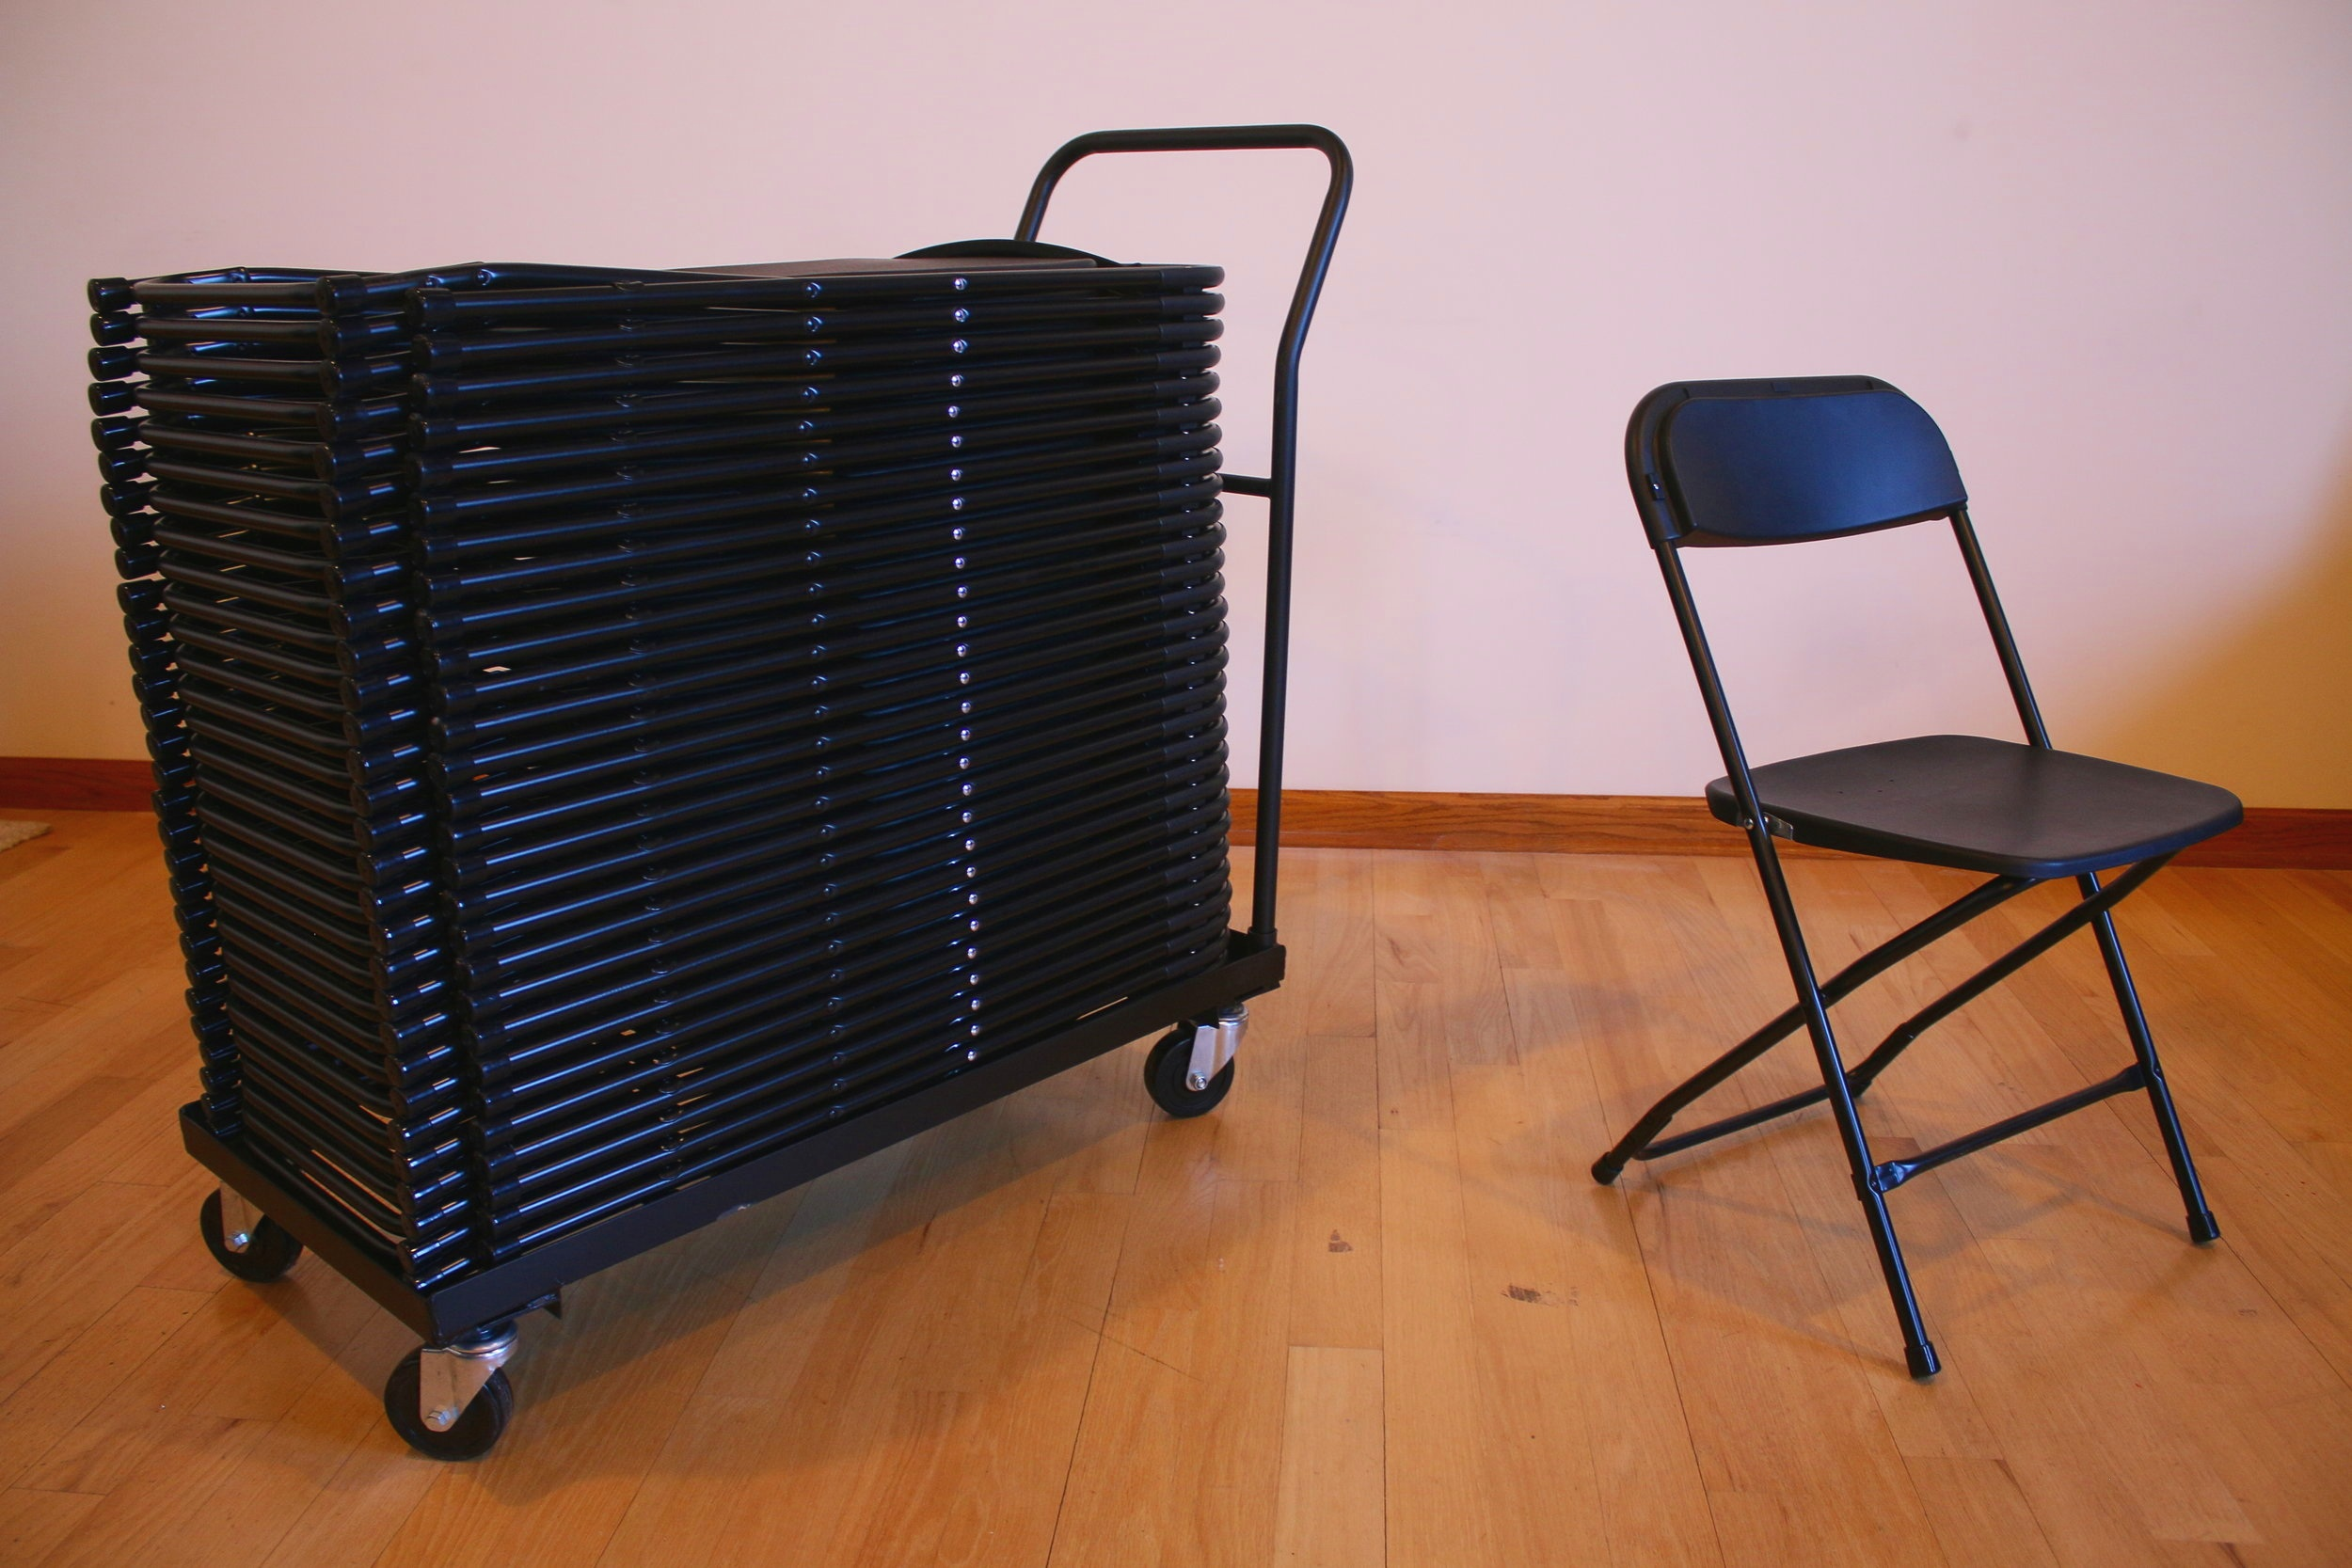 30 additional folding chairs, for seating up to 40 total